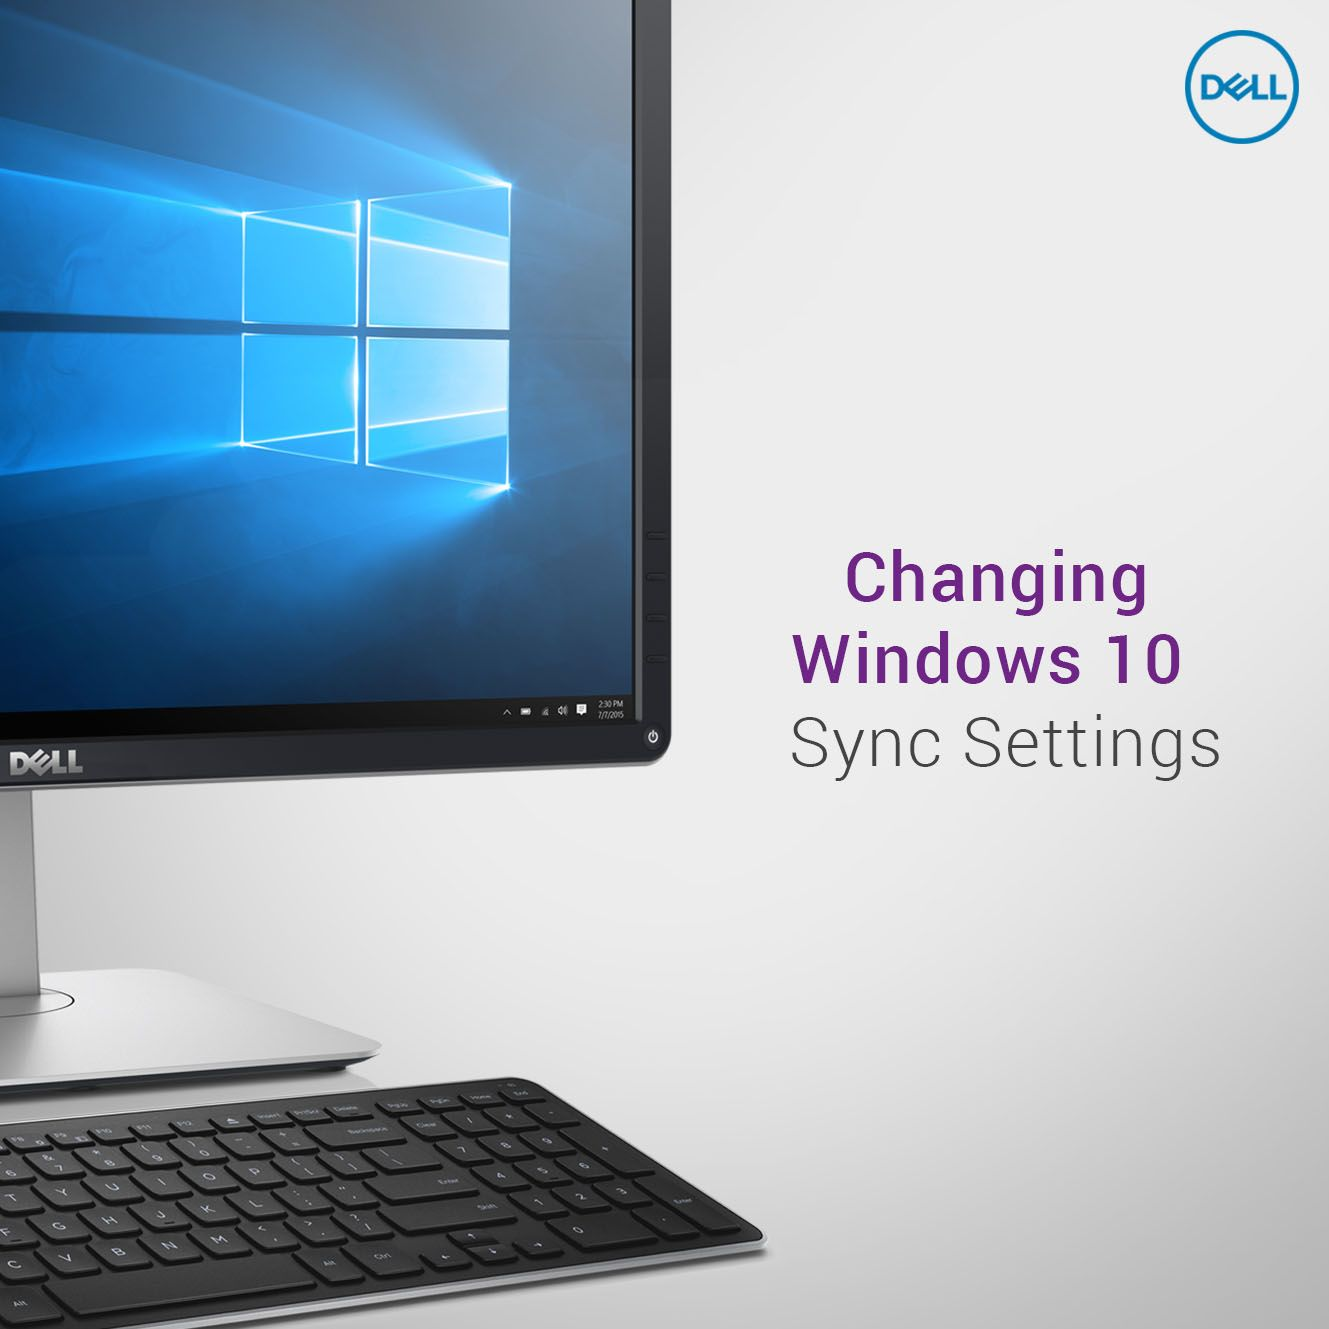 About sync settings on windows 10 devices windows 10